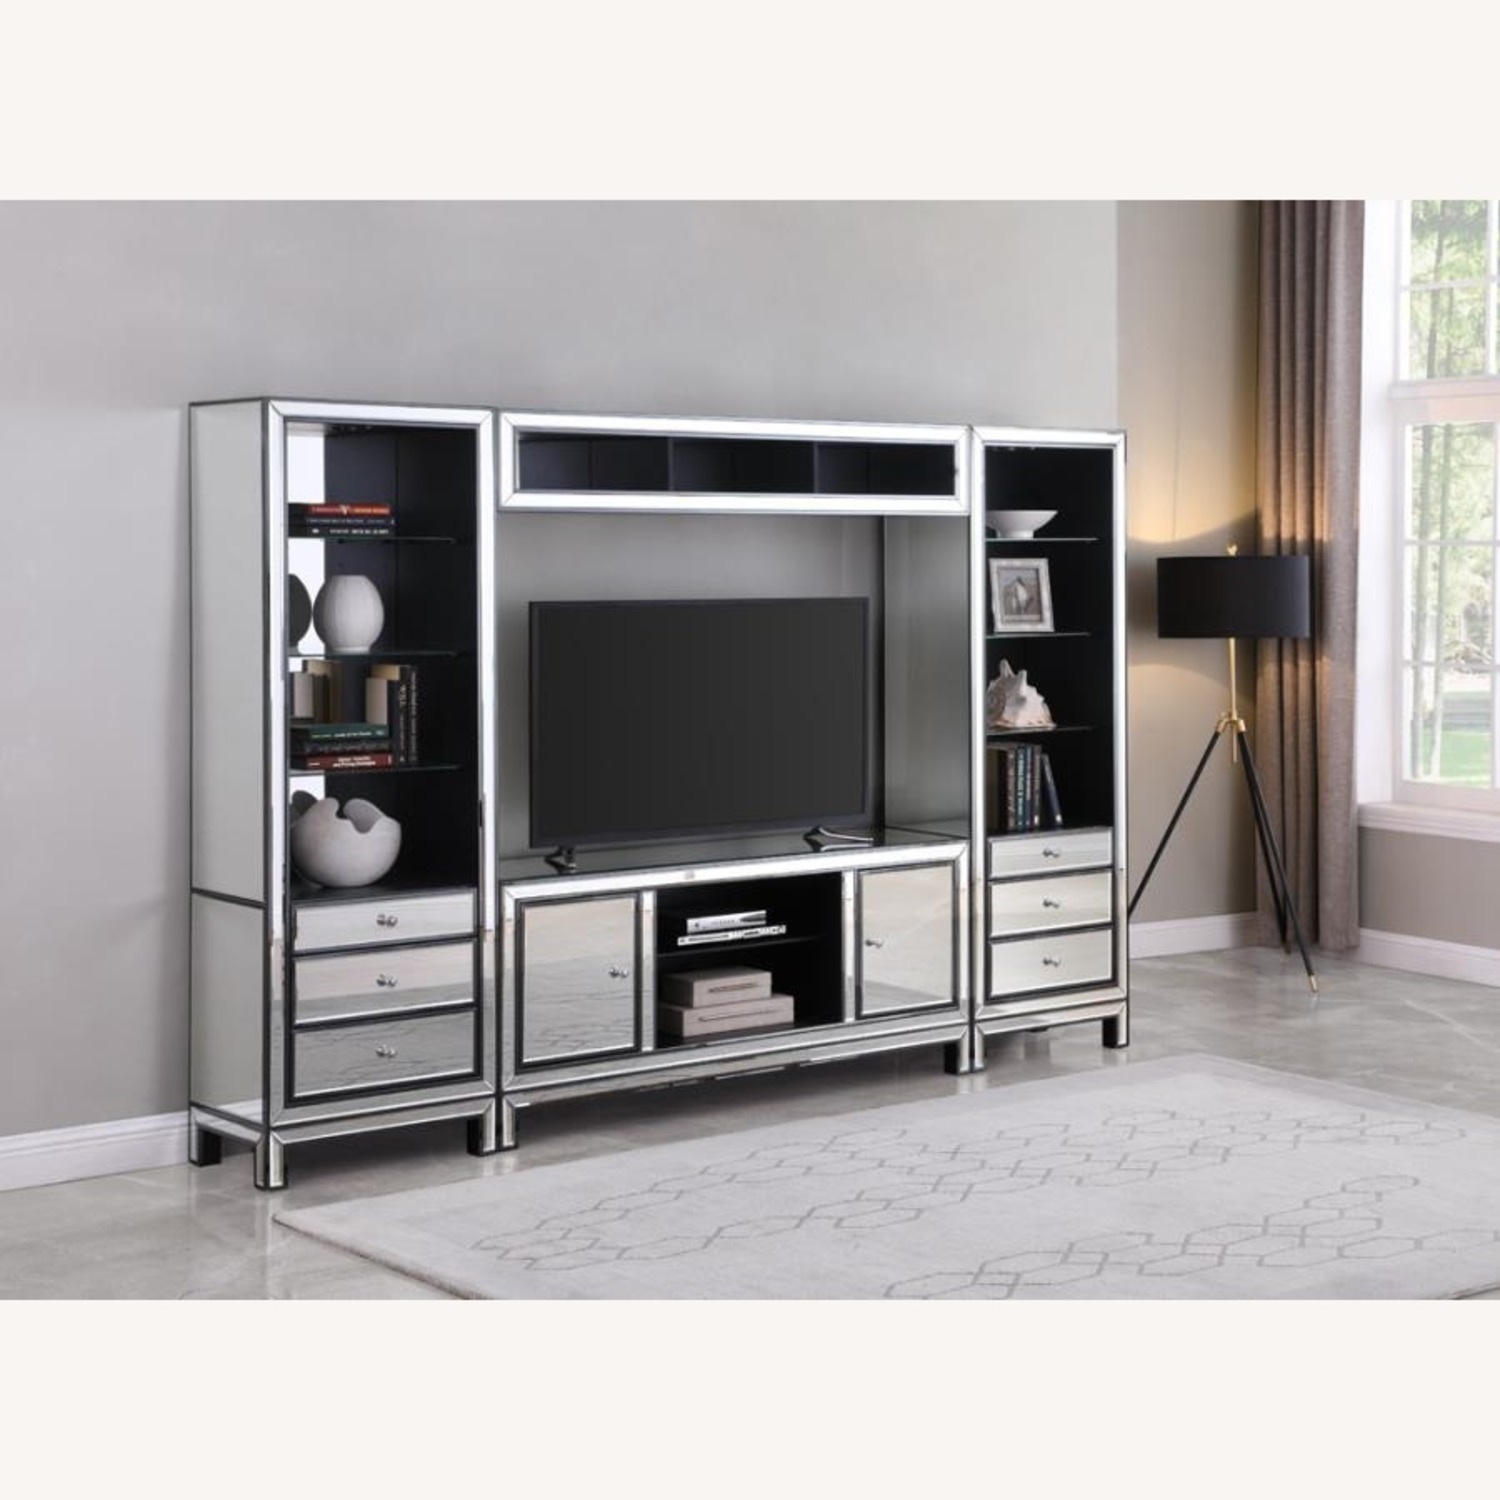 TV Console W/ Adjustable Shelf In Silver Finish - image-2